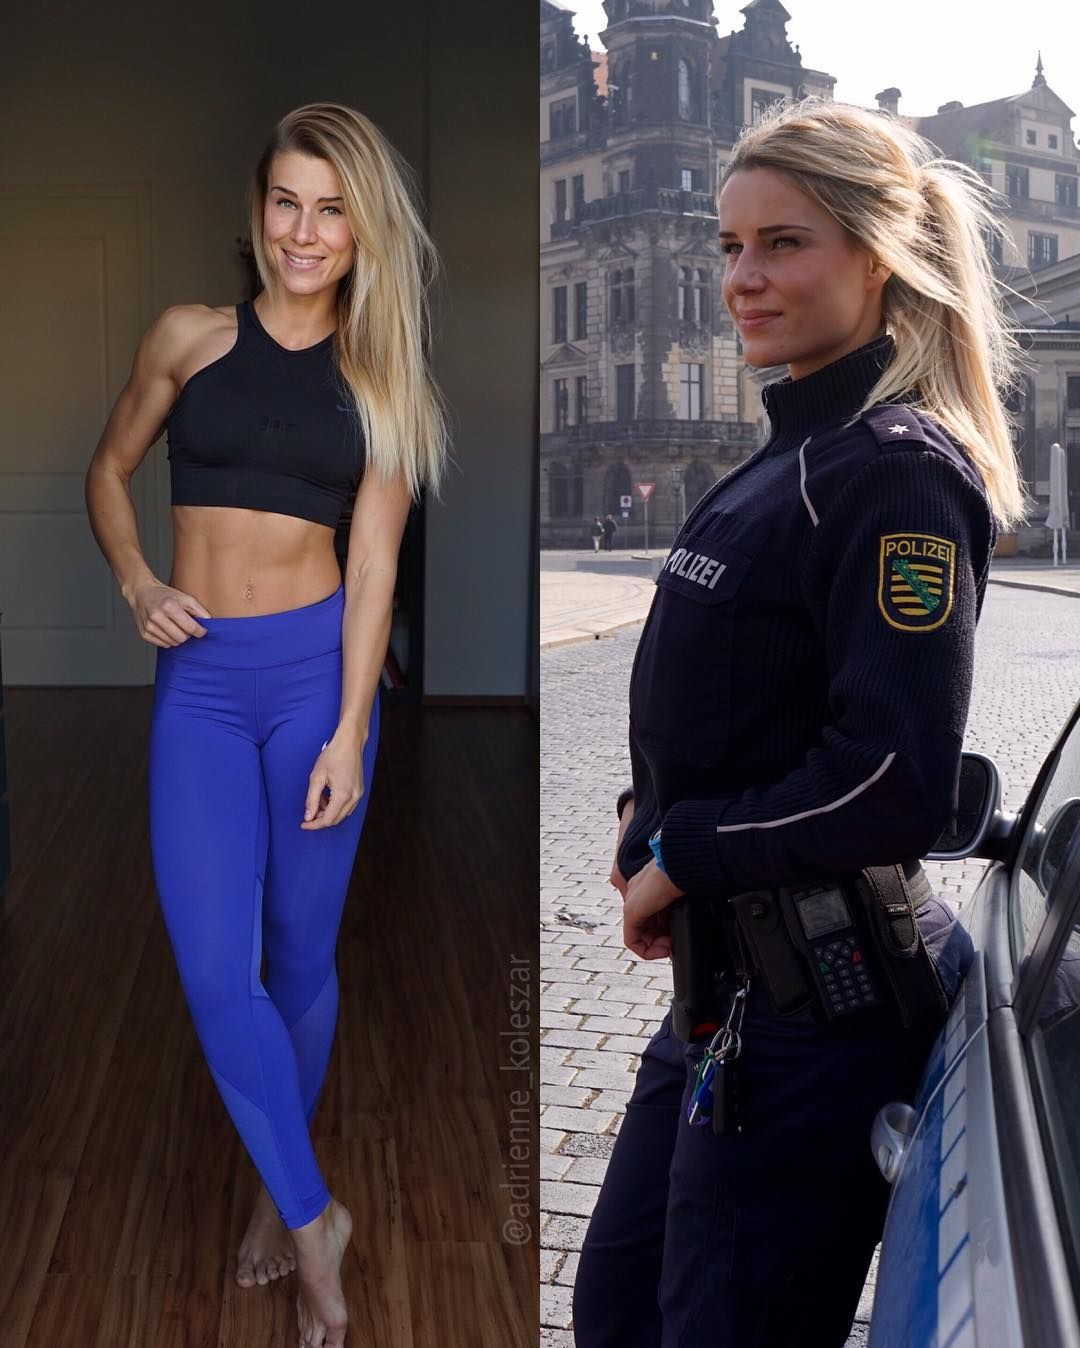 16 Photos Of World S Hottest Police Officer From Germany Reckon Talk Police Women Female Cop Army Women